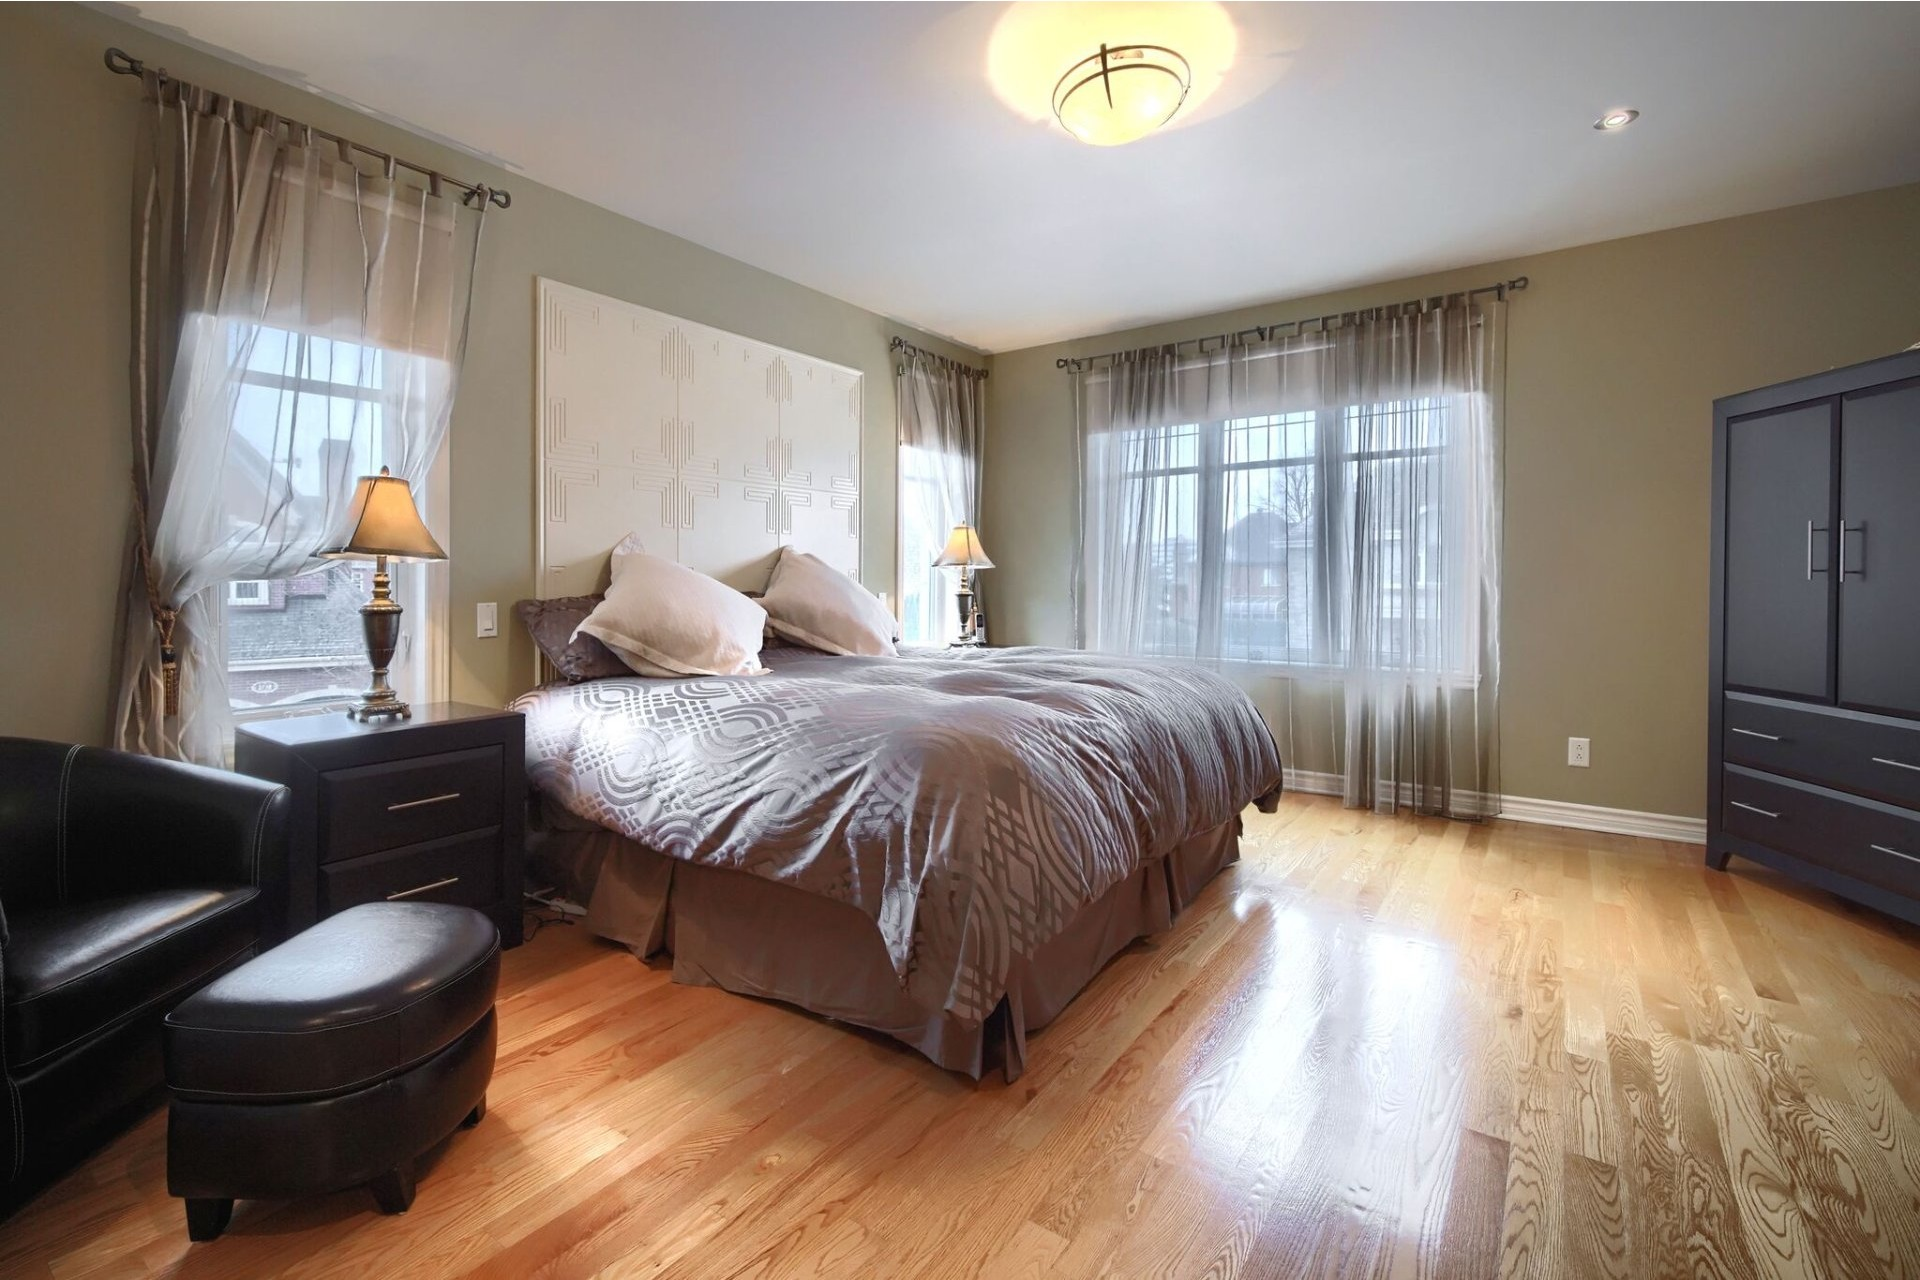 House For sale Brossard - 17 rooms